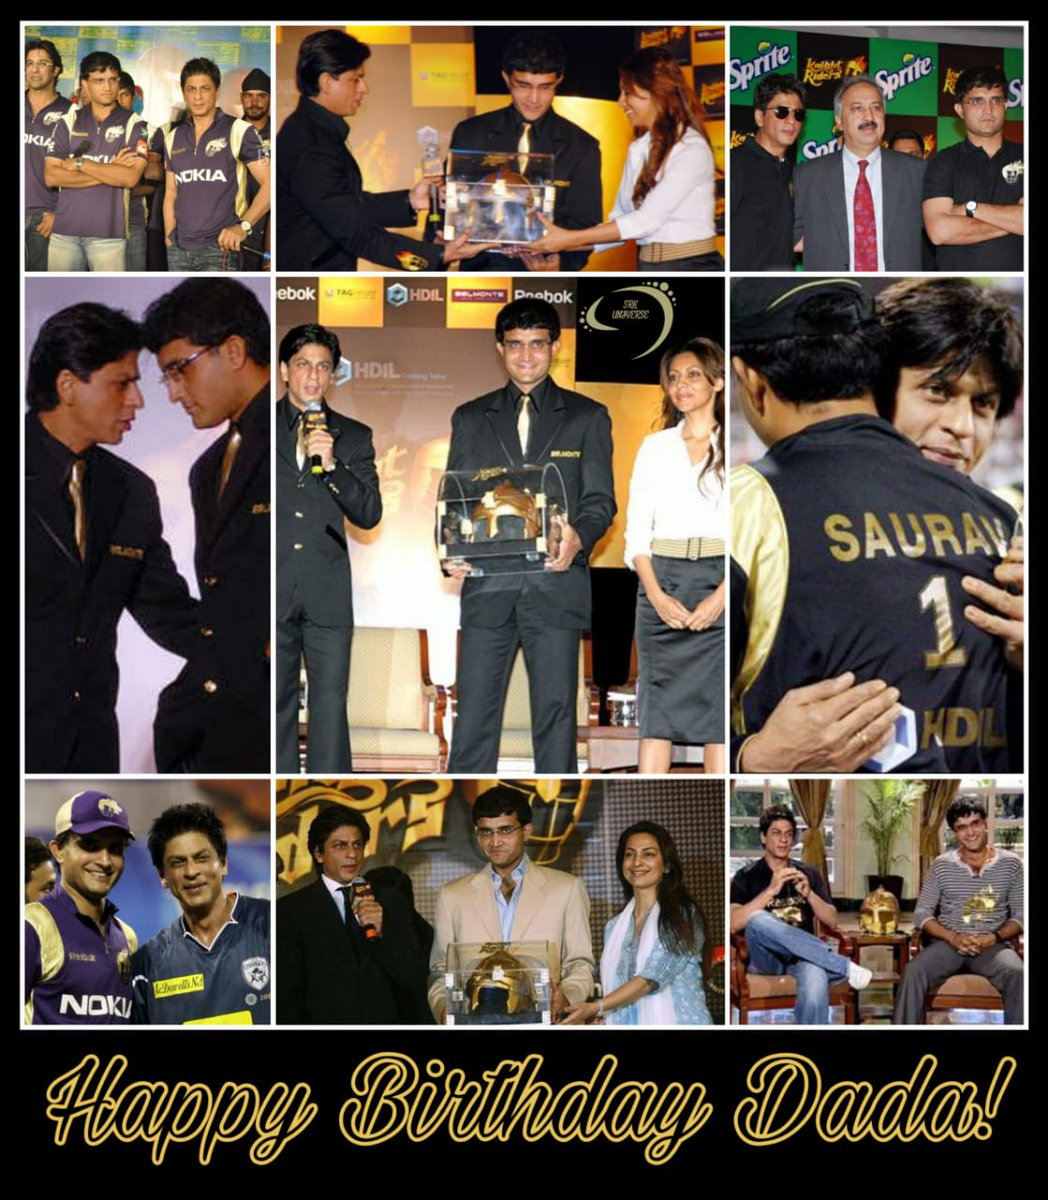 Wishing a very Happy Birthday to the first Skipper of our KKR Squad! Here are some snaps from those golden days...literally golden  #HappyBirthdayDada<br>http://pic.twitter.com/cCY7gJvsRd